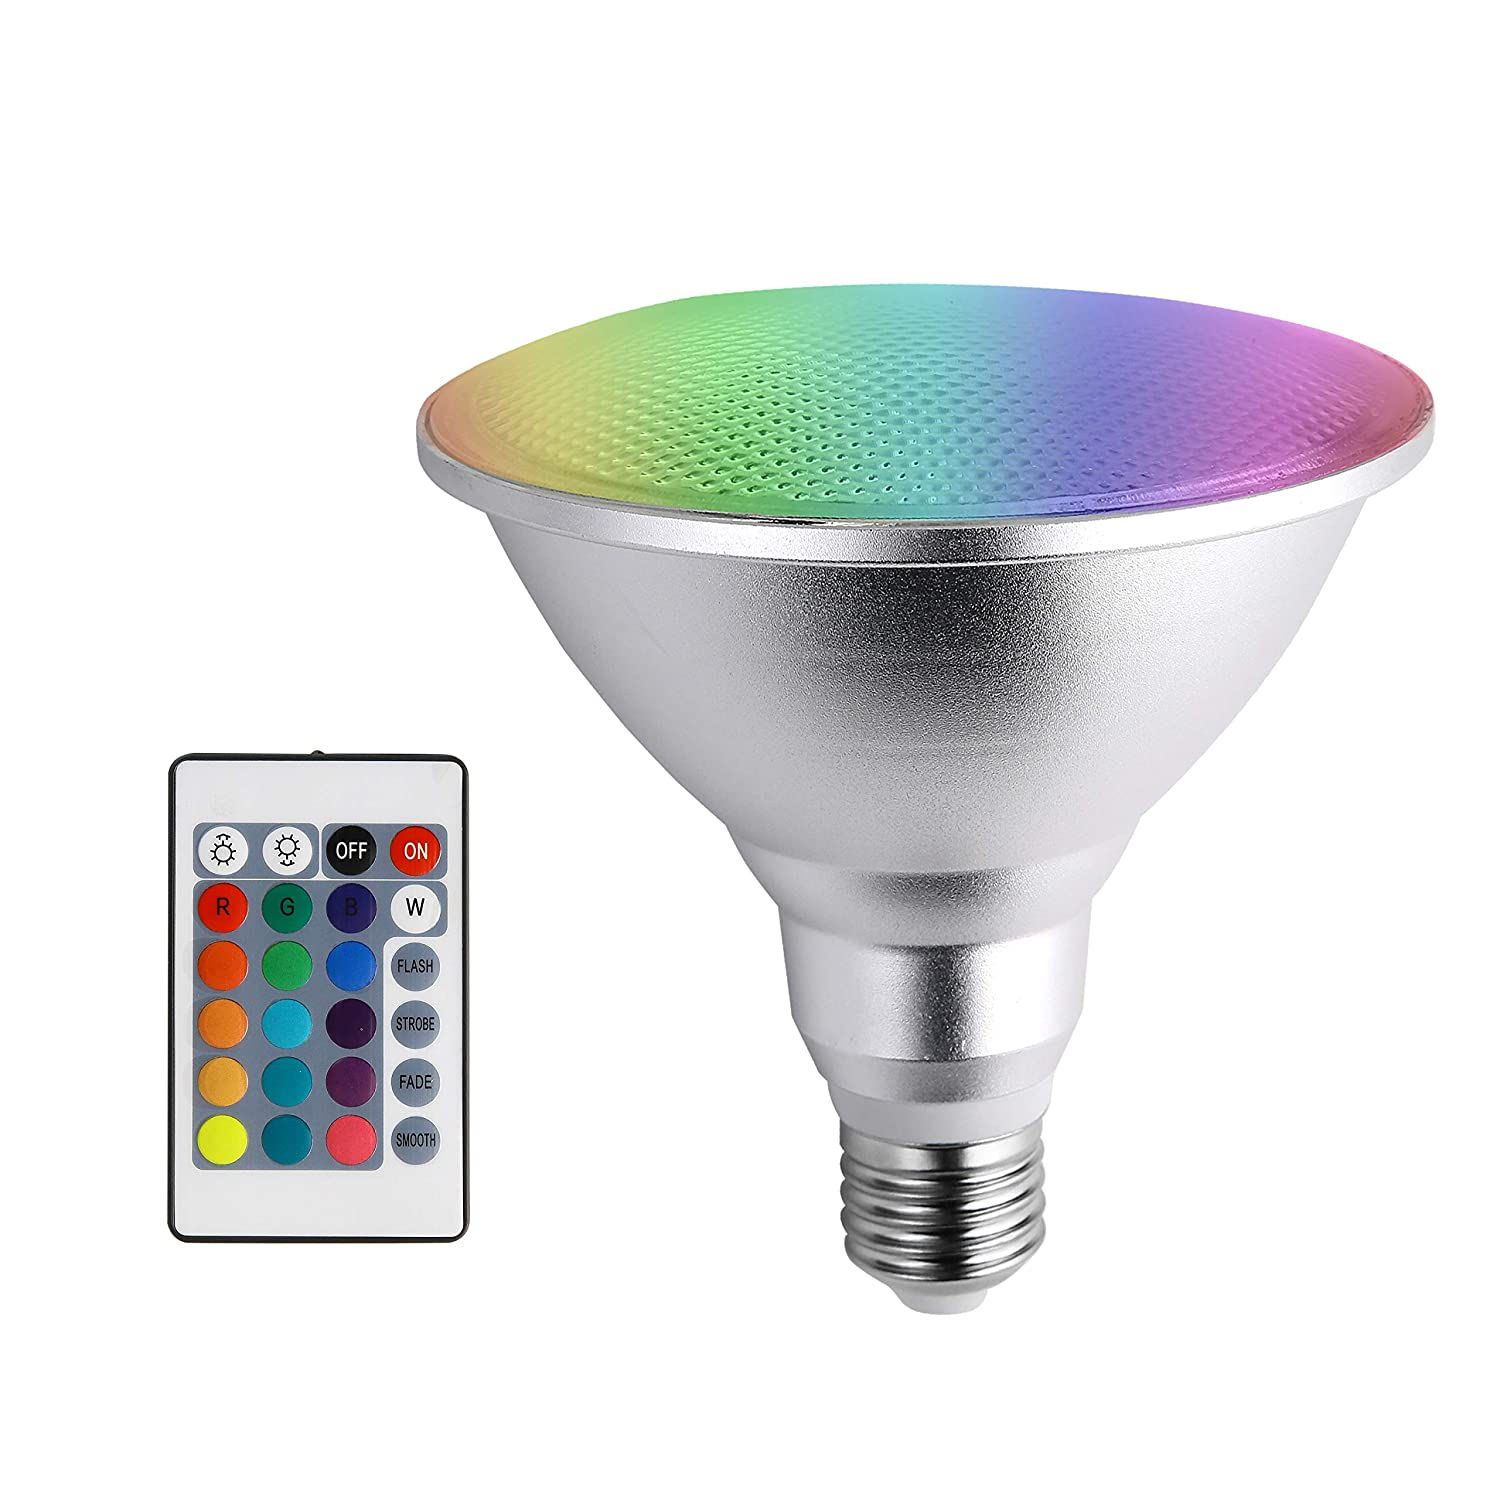 Led Spotlight E27 PAR38 20W RGB Colored Light Bulb 16 Color Changing with IR Remote Control for Home, Living Room, Party Decoration Waterproof Outdoor Floodlight (20W PAR38 RGB)